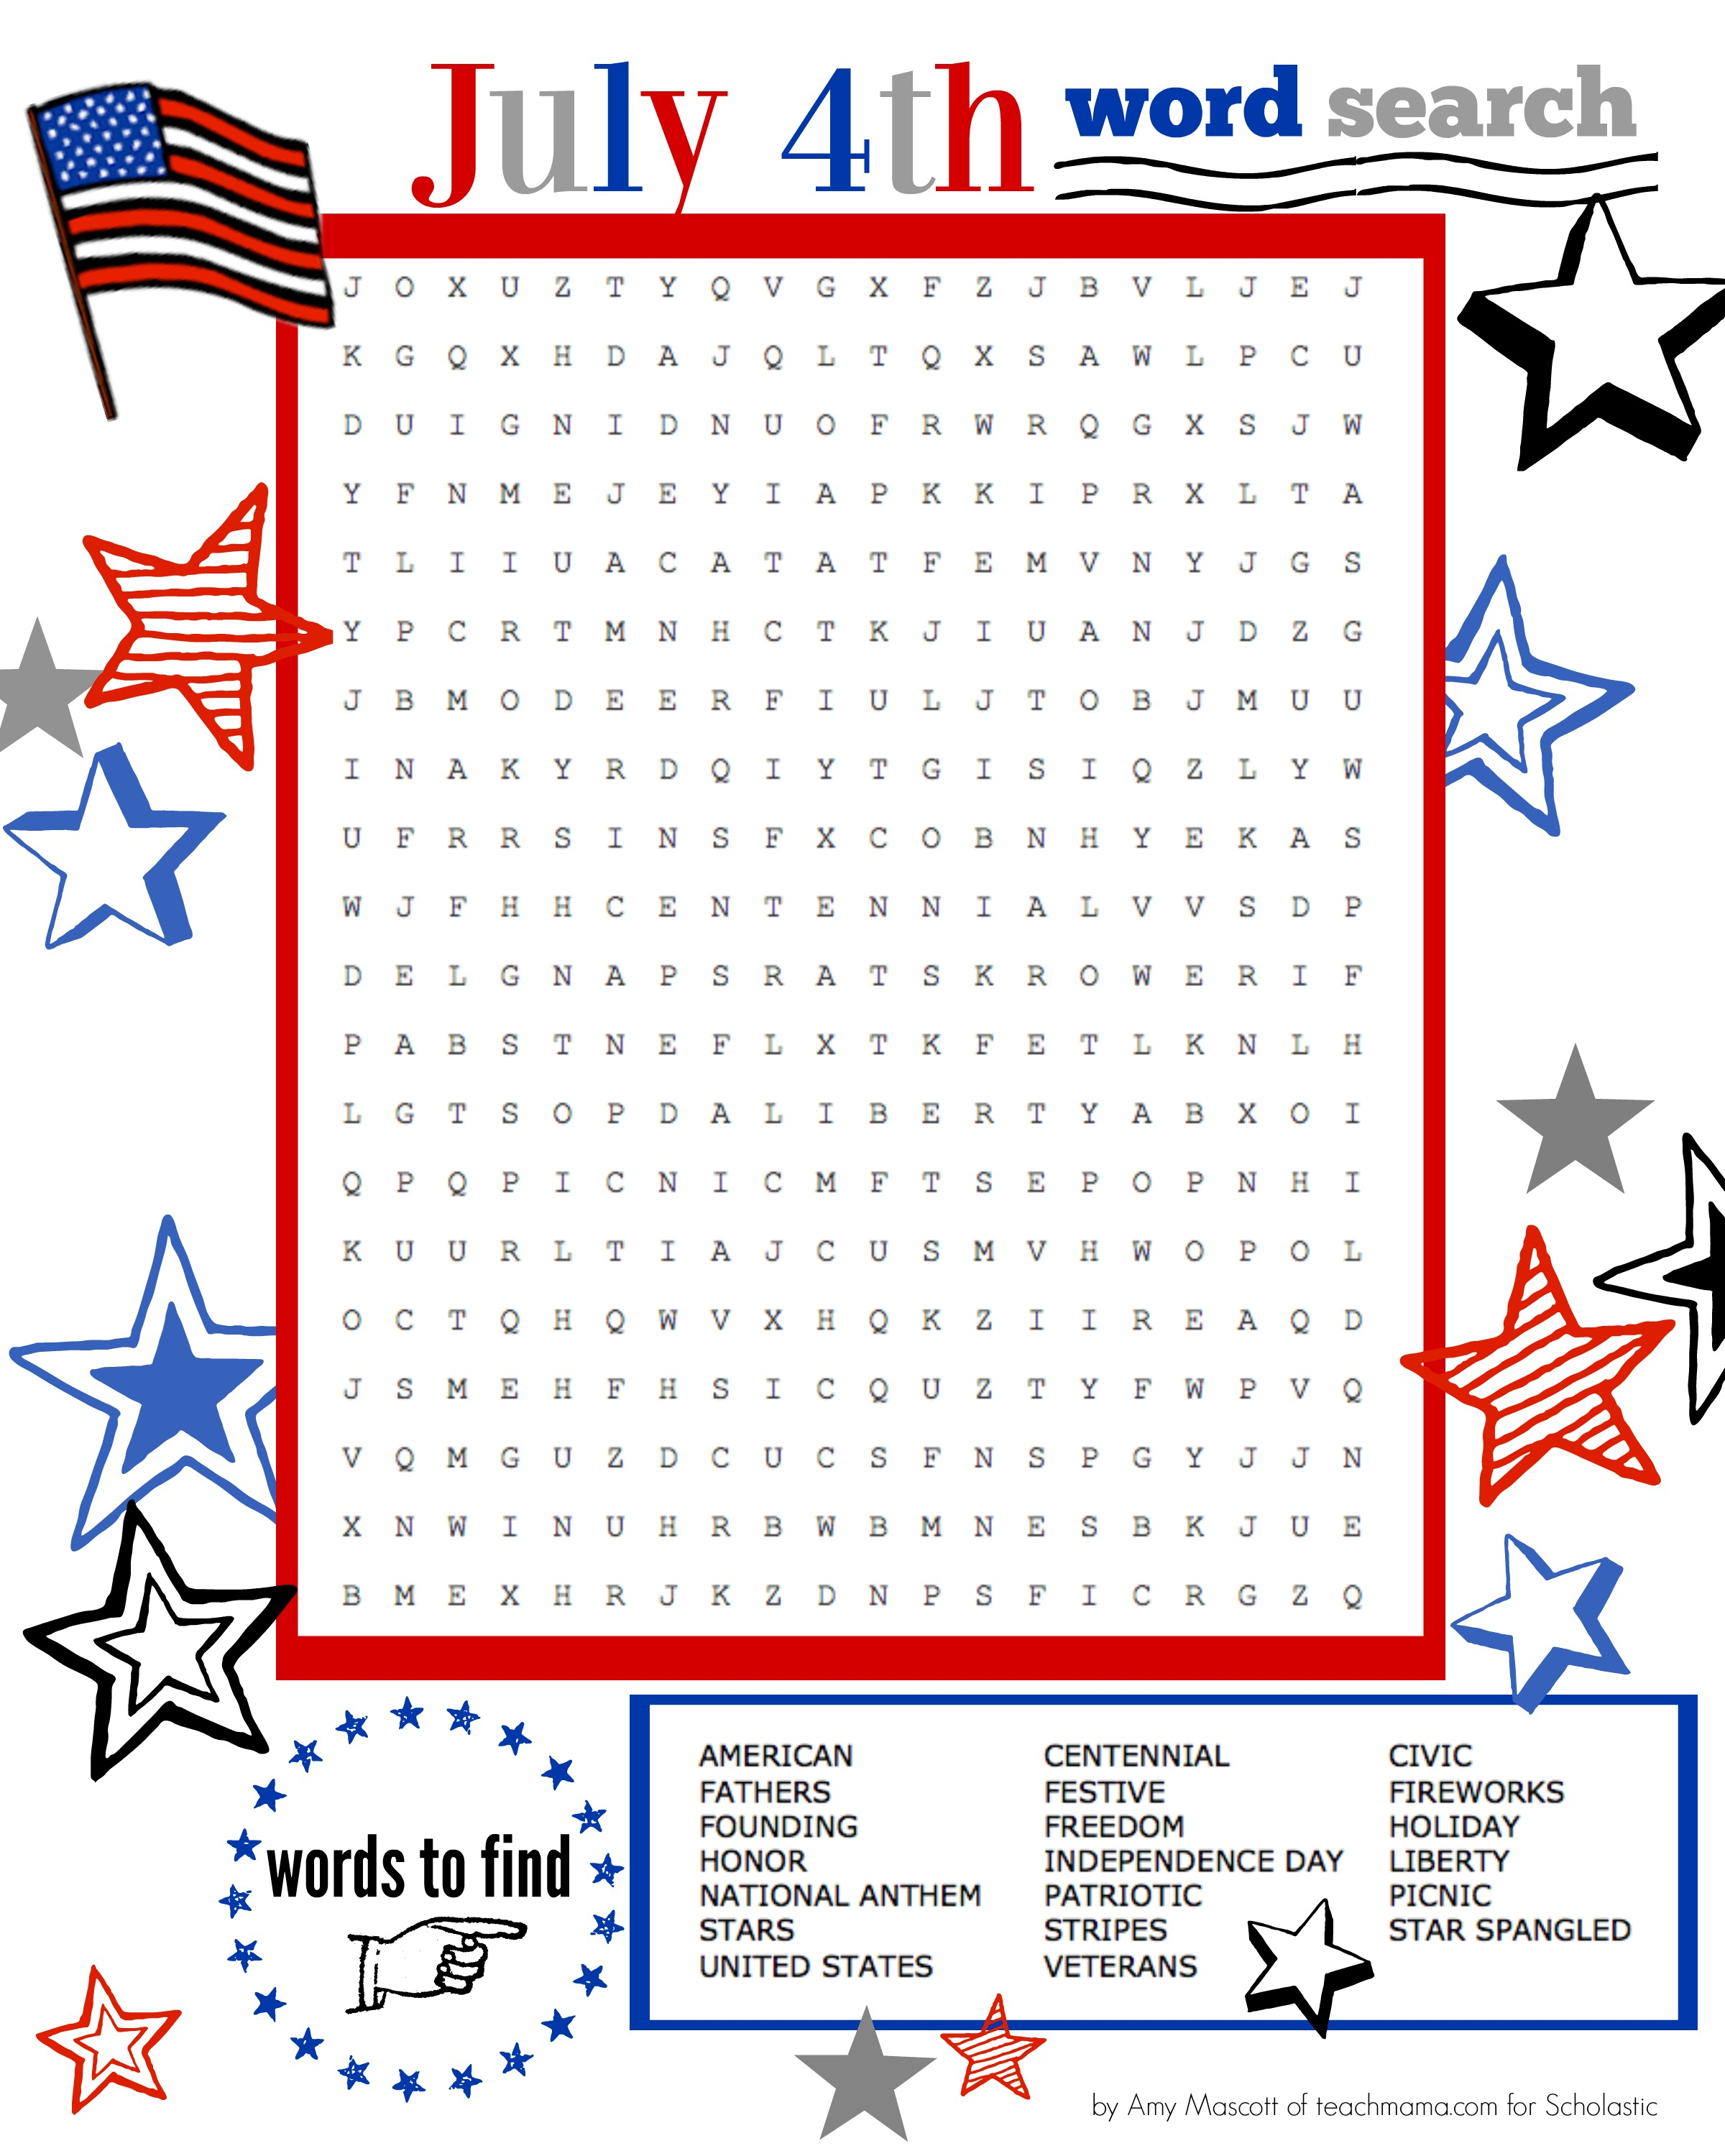 Superstar Celebration: July 4Th Word Search Printable | Scholastic - Printable July 4Th Puzzles